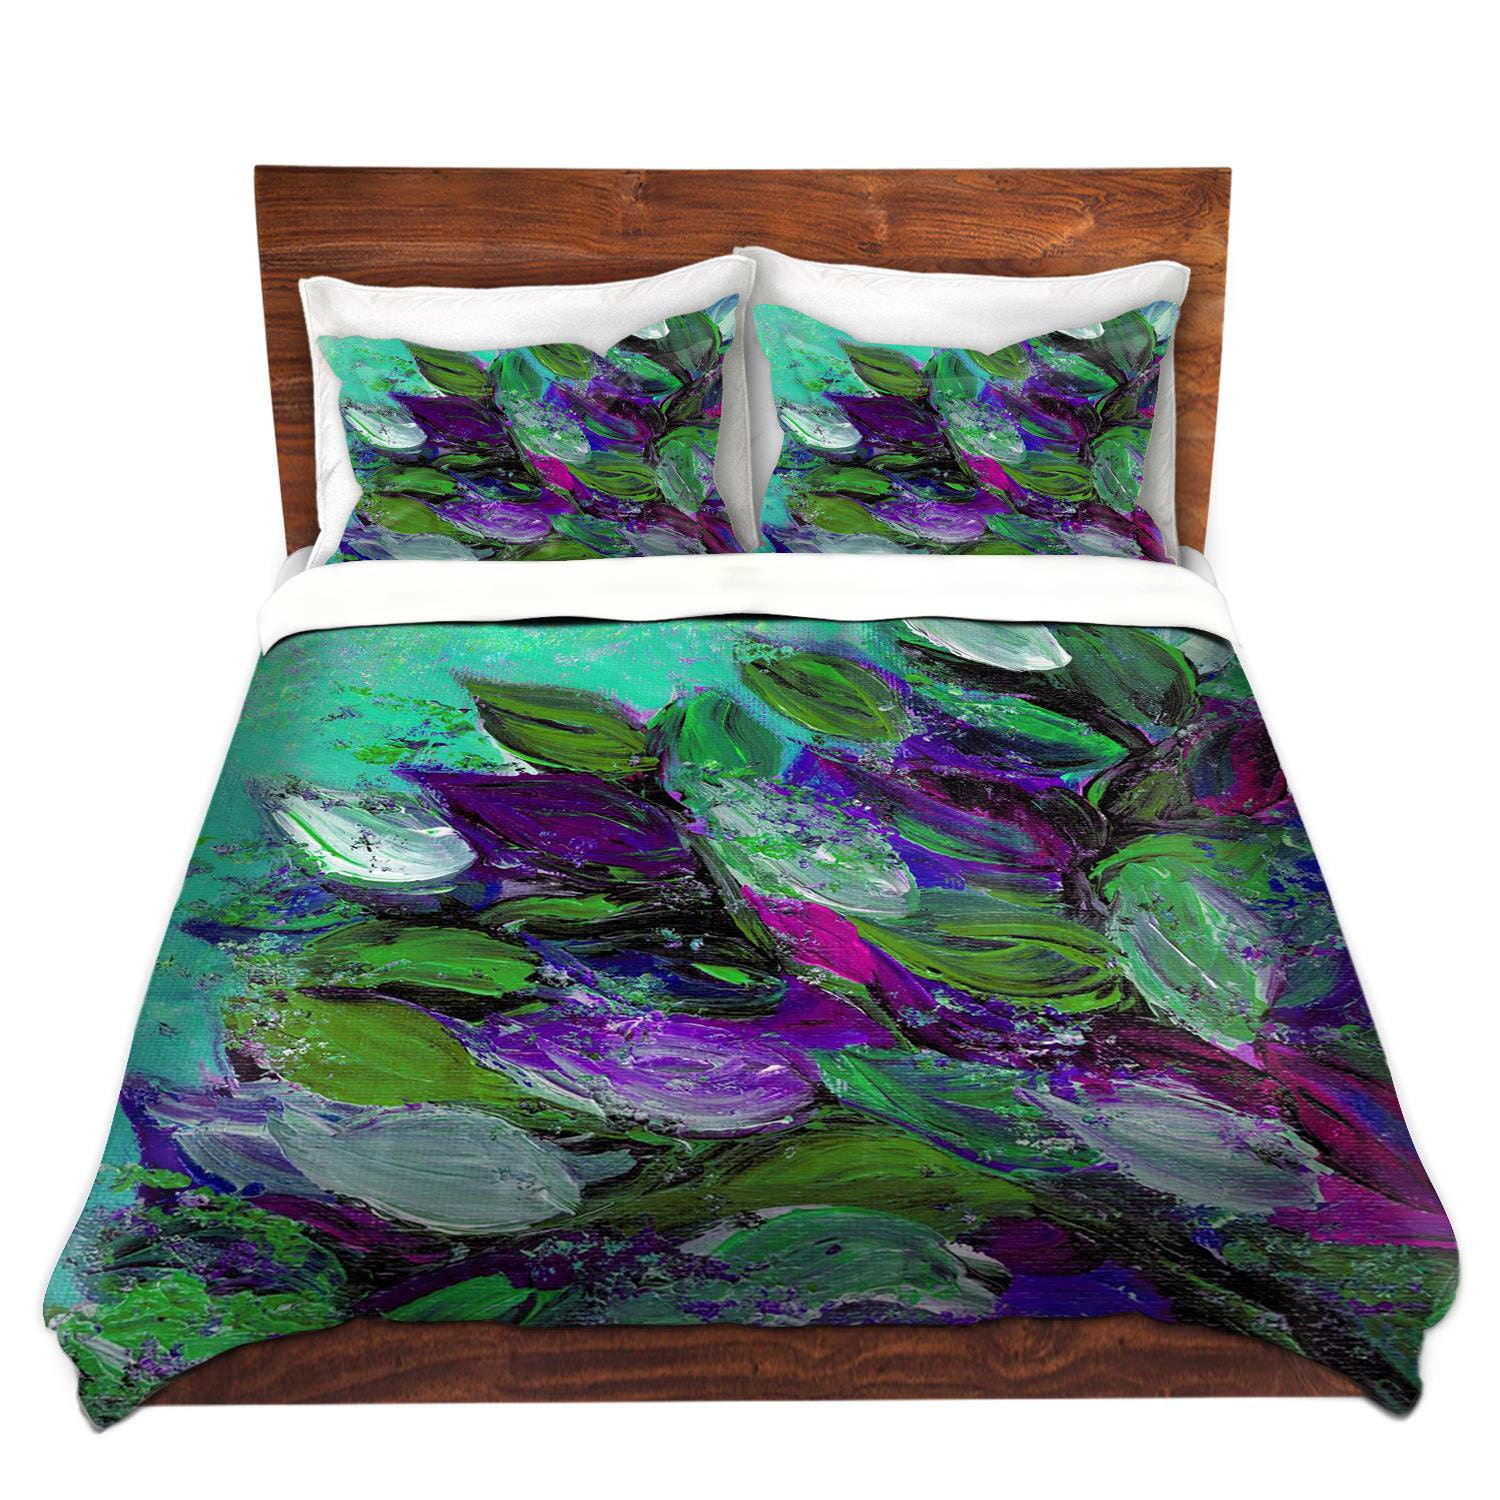 Blooming Beautiful Floral Art Duvet Covers King Queen Twin Size Mint Seafoam Green Plum Purple Home